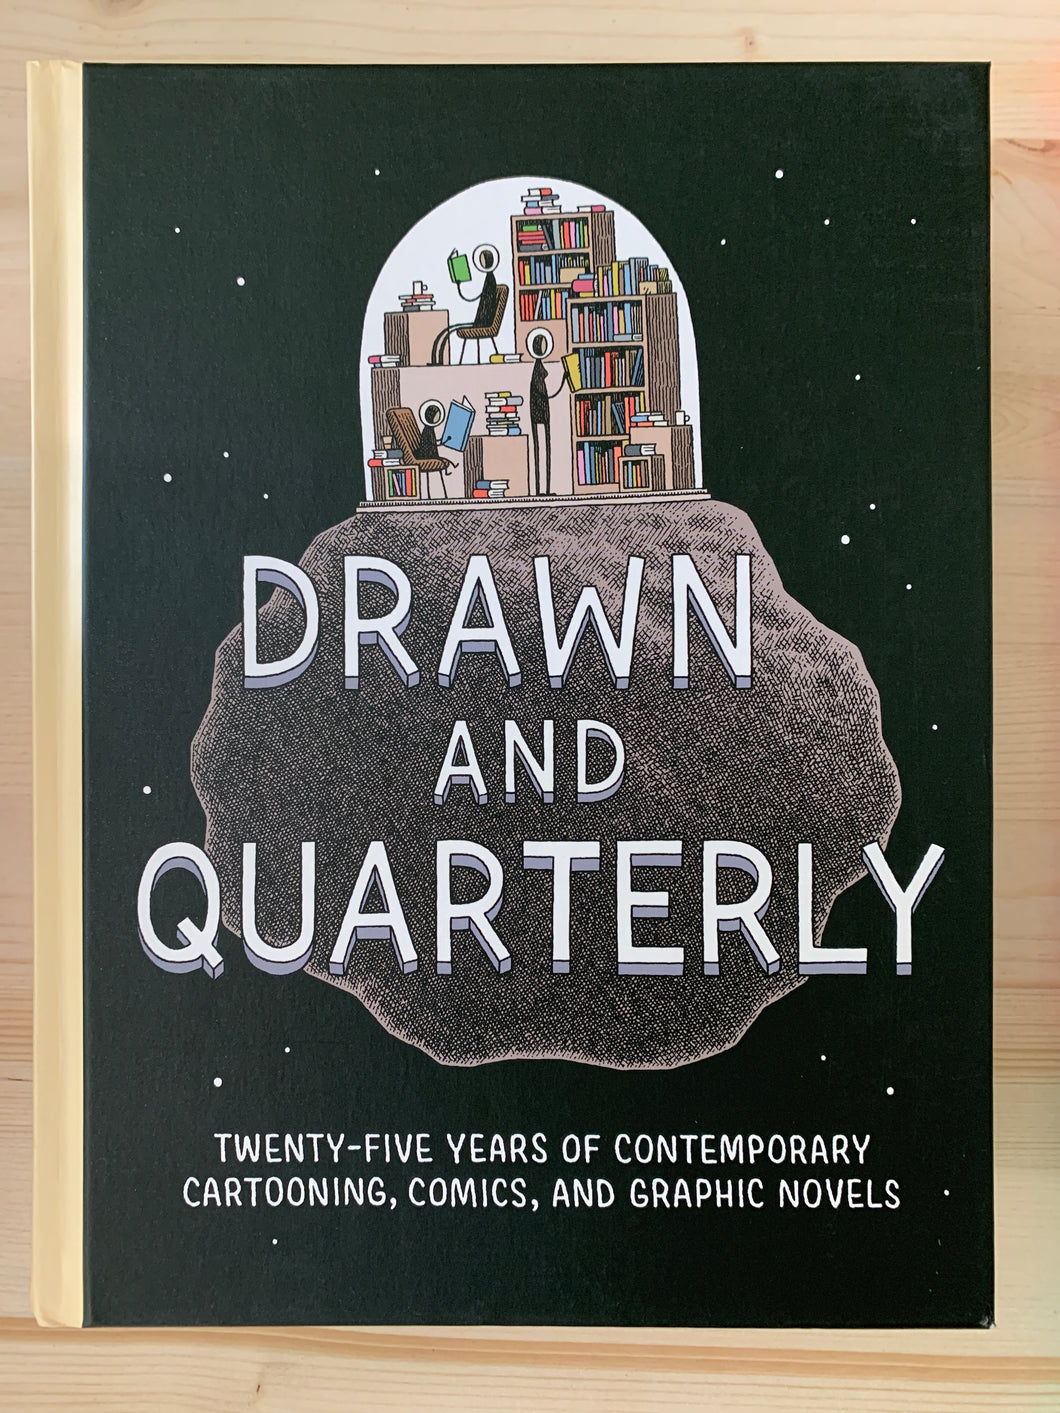 Drawn and Quarterly: 25 Years